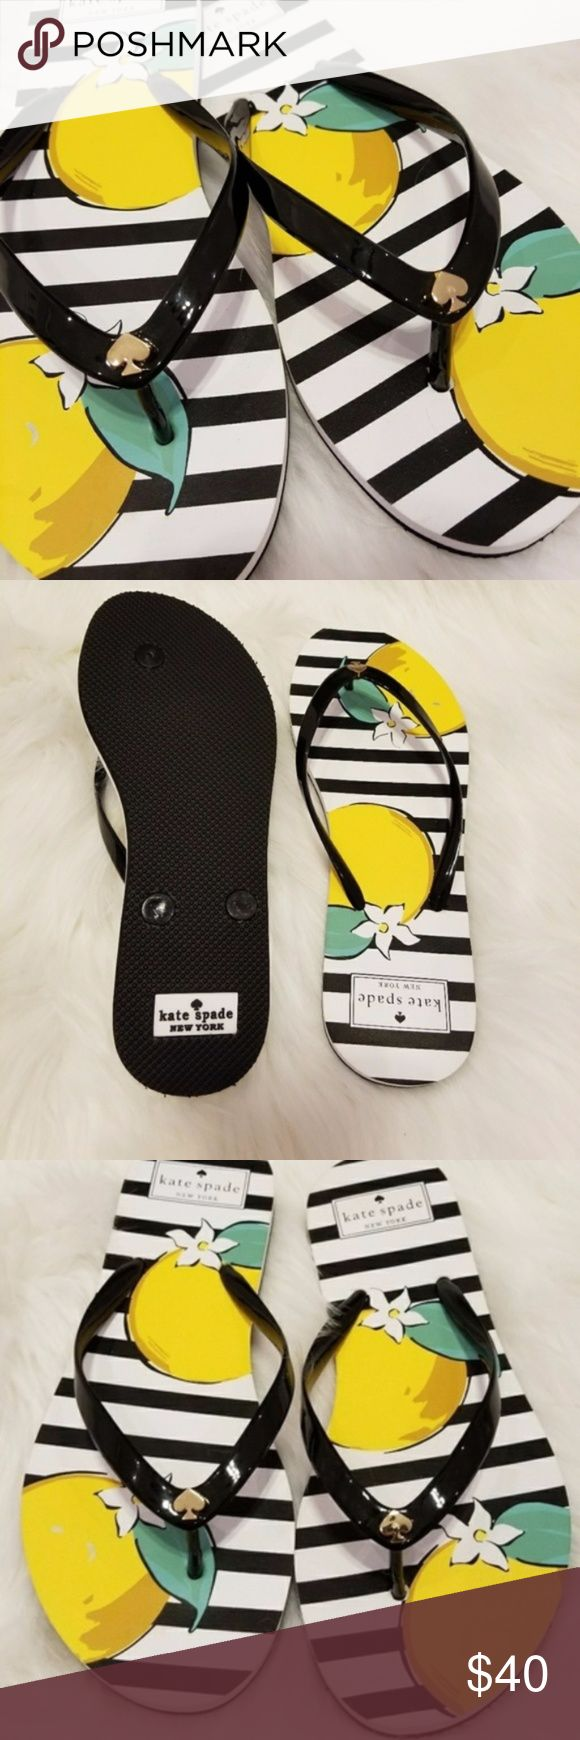 NWOB KATE SPADE stripe flip flops SIZE 7 New without box. Kate Spade summer days black and white stripe flip flops with flower design.  New from smoke and pet free home. kate spade Shoes